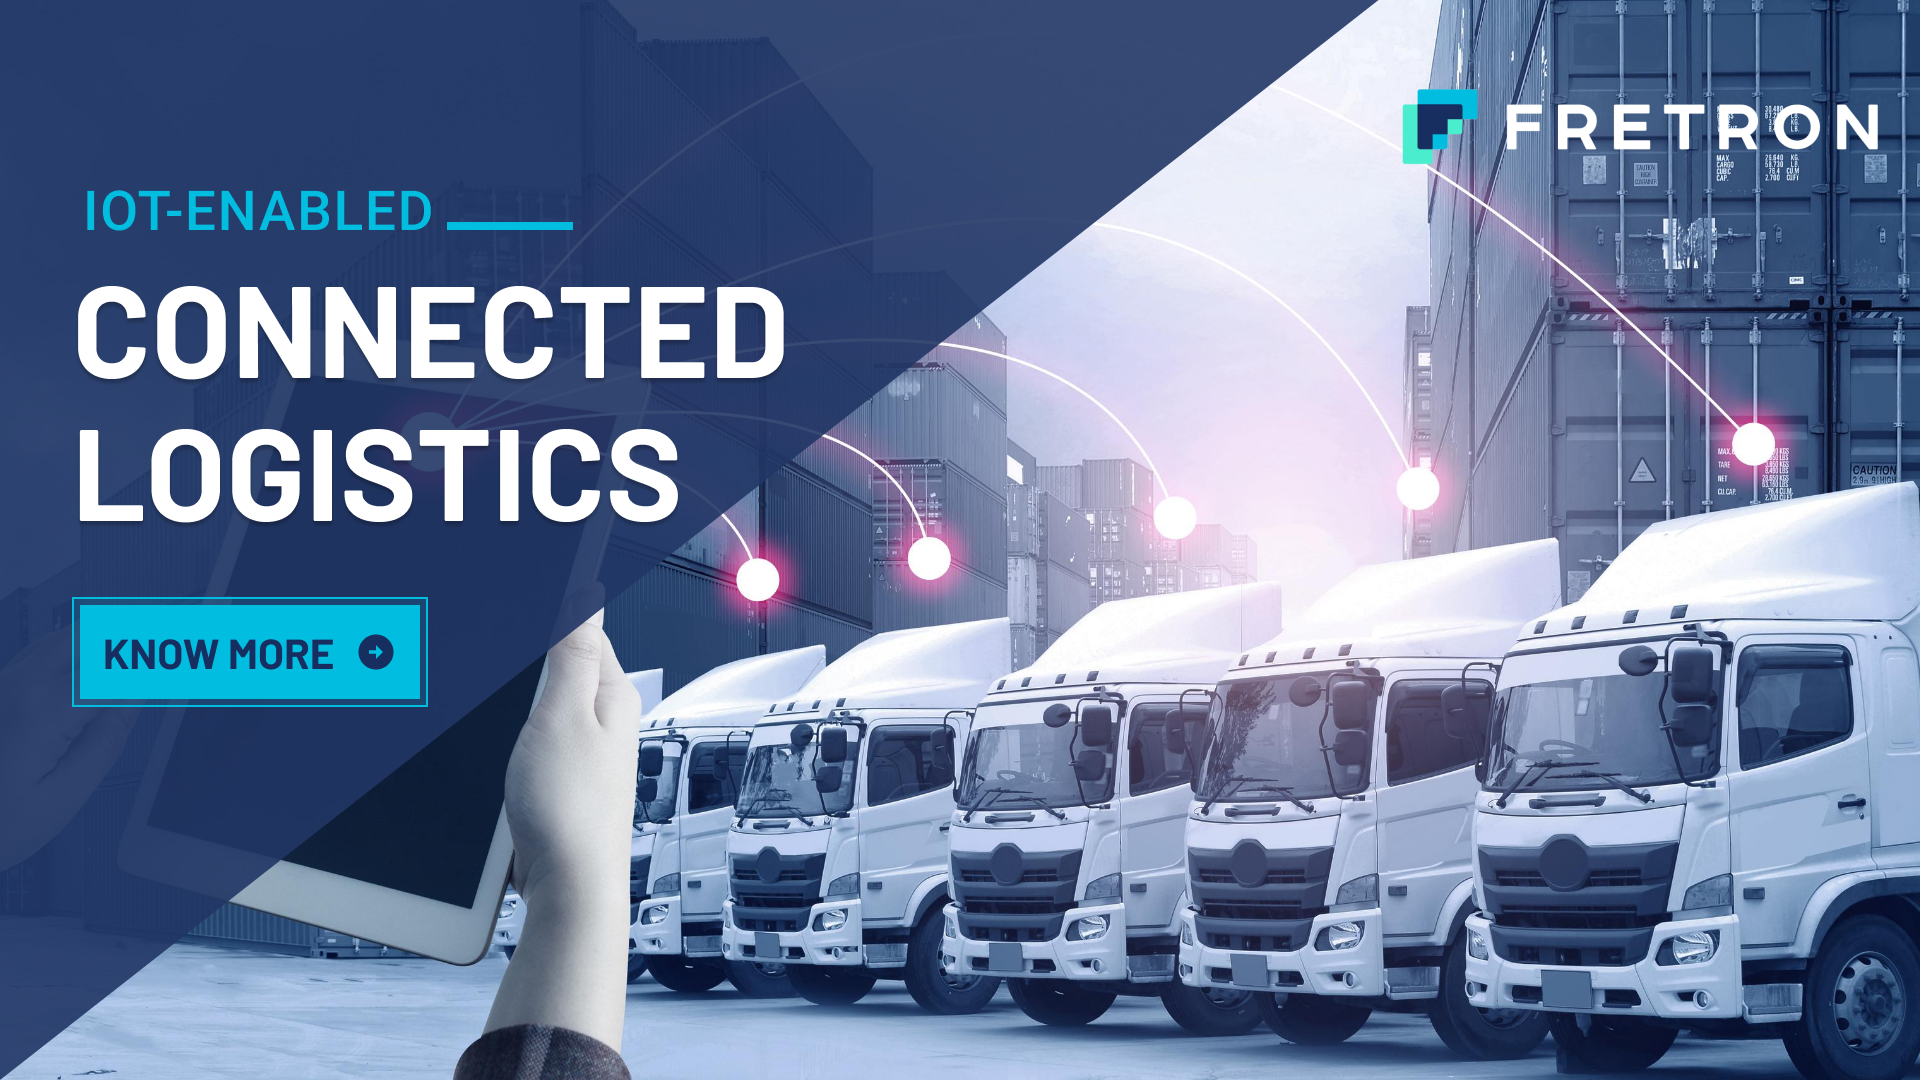 Connected Logistics 7 Ways it Boosts Your Transportation Management